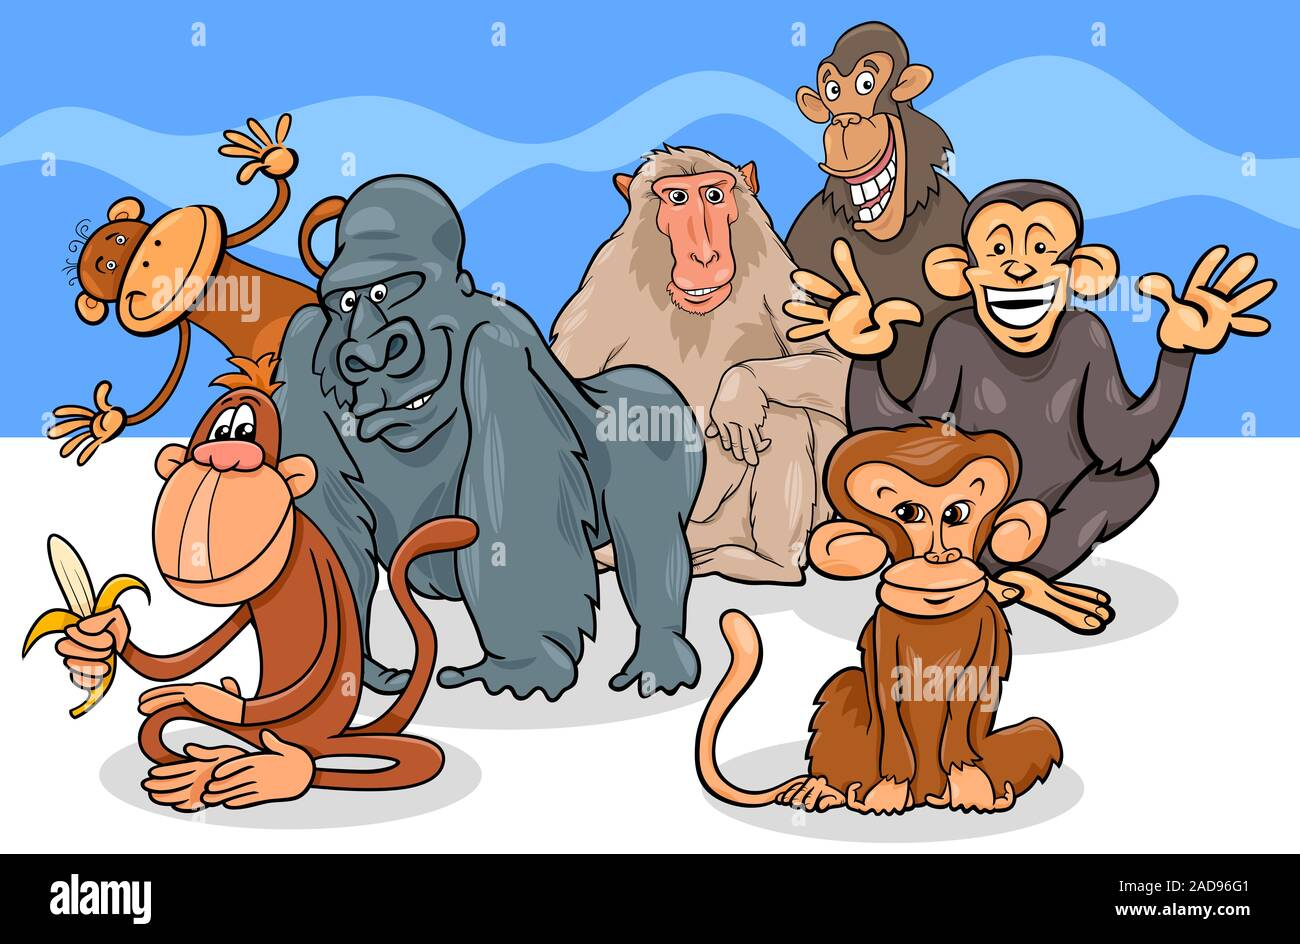 Baboon Cartoon High Resolution Stock Photography And Images Alamy He was the main antagonist of season 1, and the secondly antagonist/protagonist of the following seasons. https www alamy com monkeys and apes cartoon characters group image335190241 html